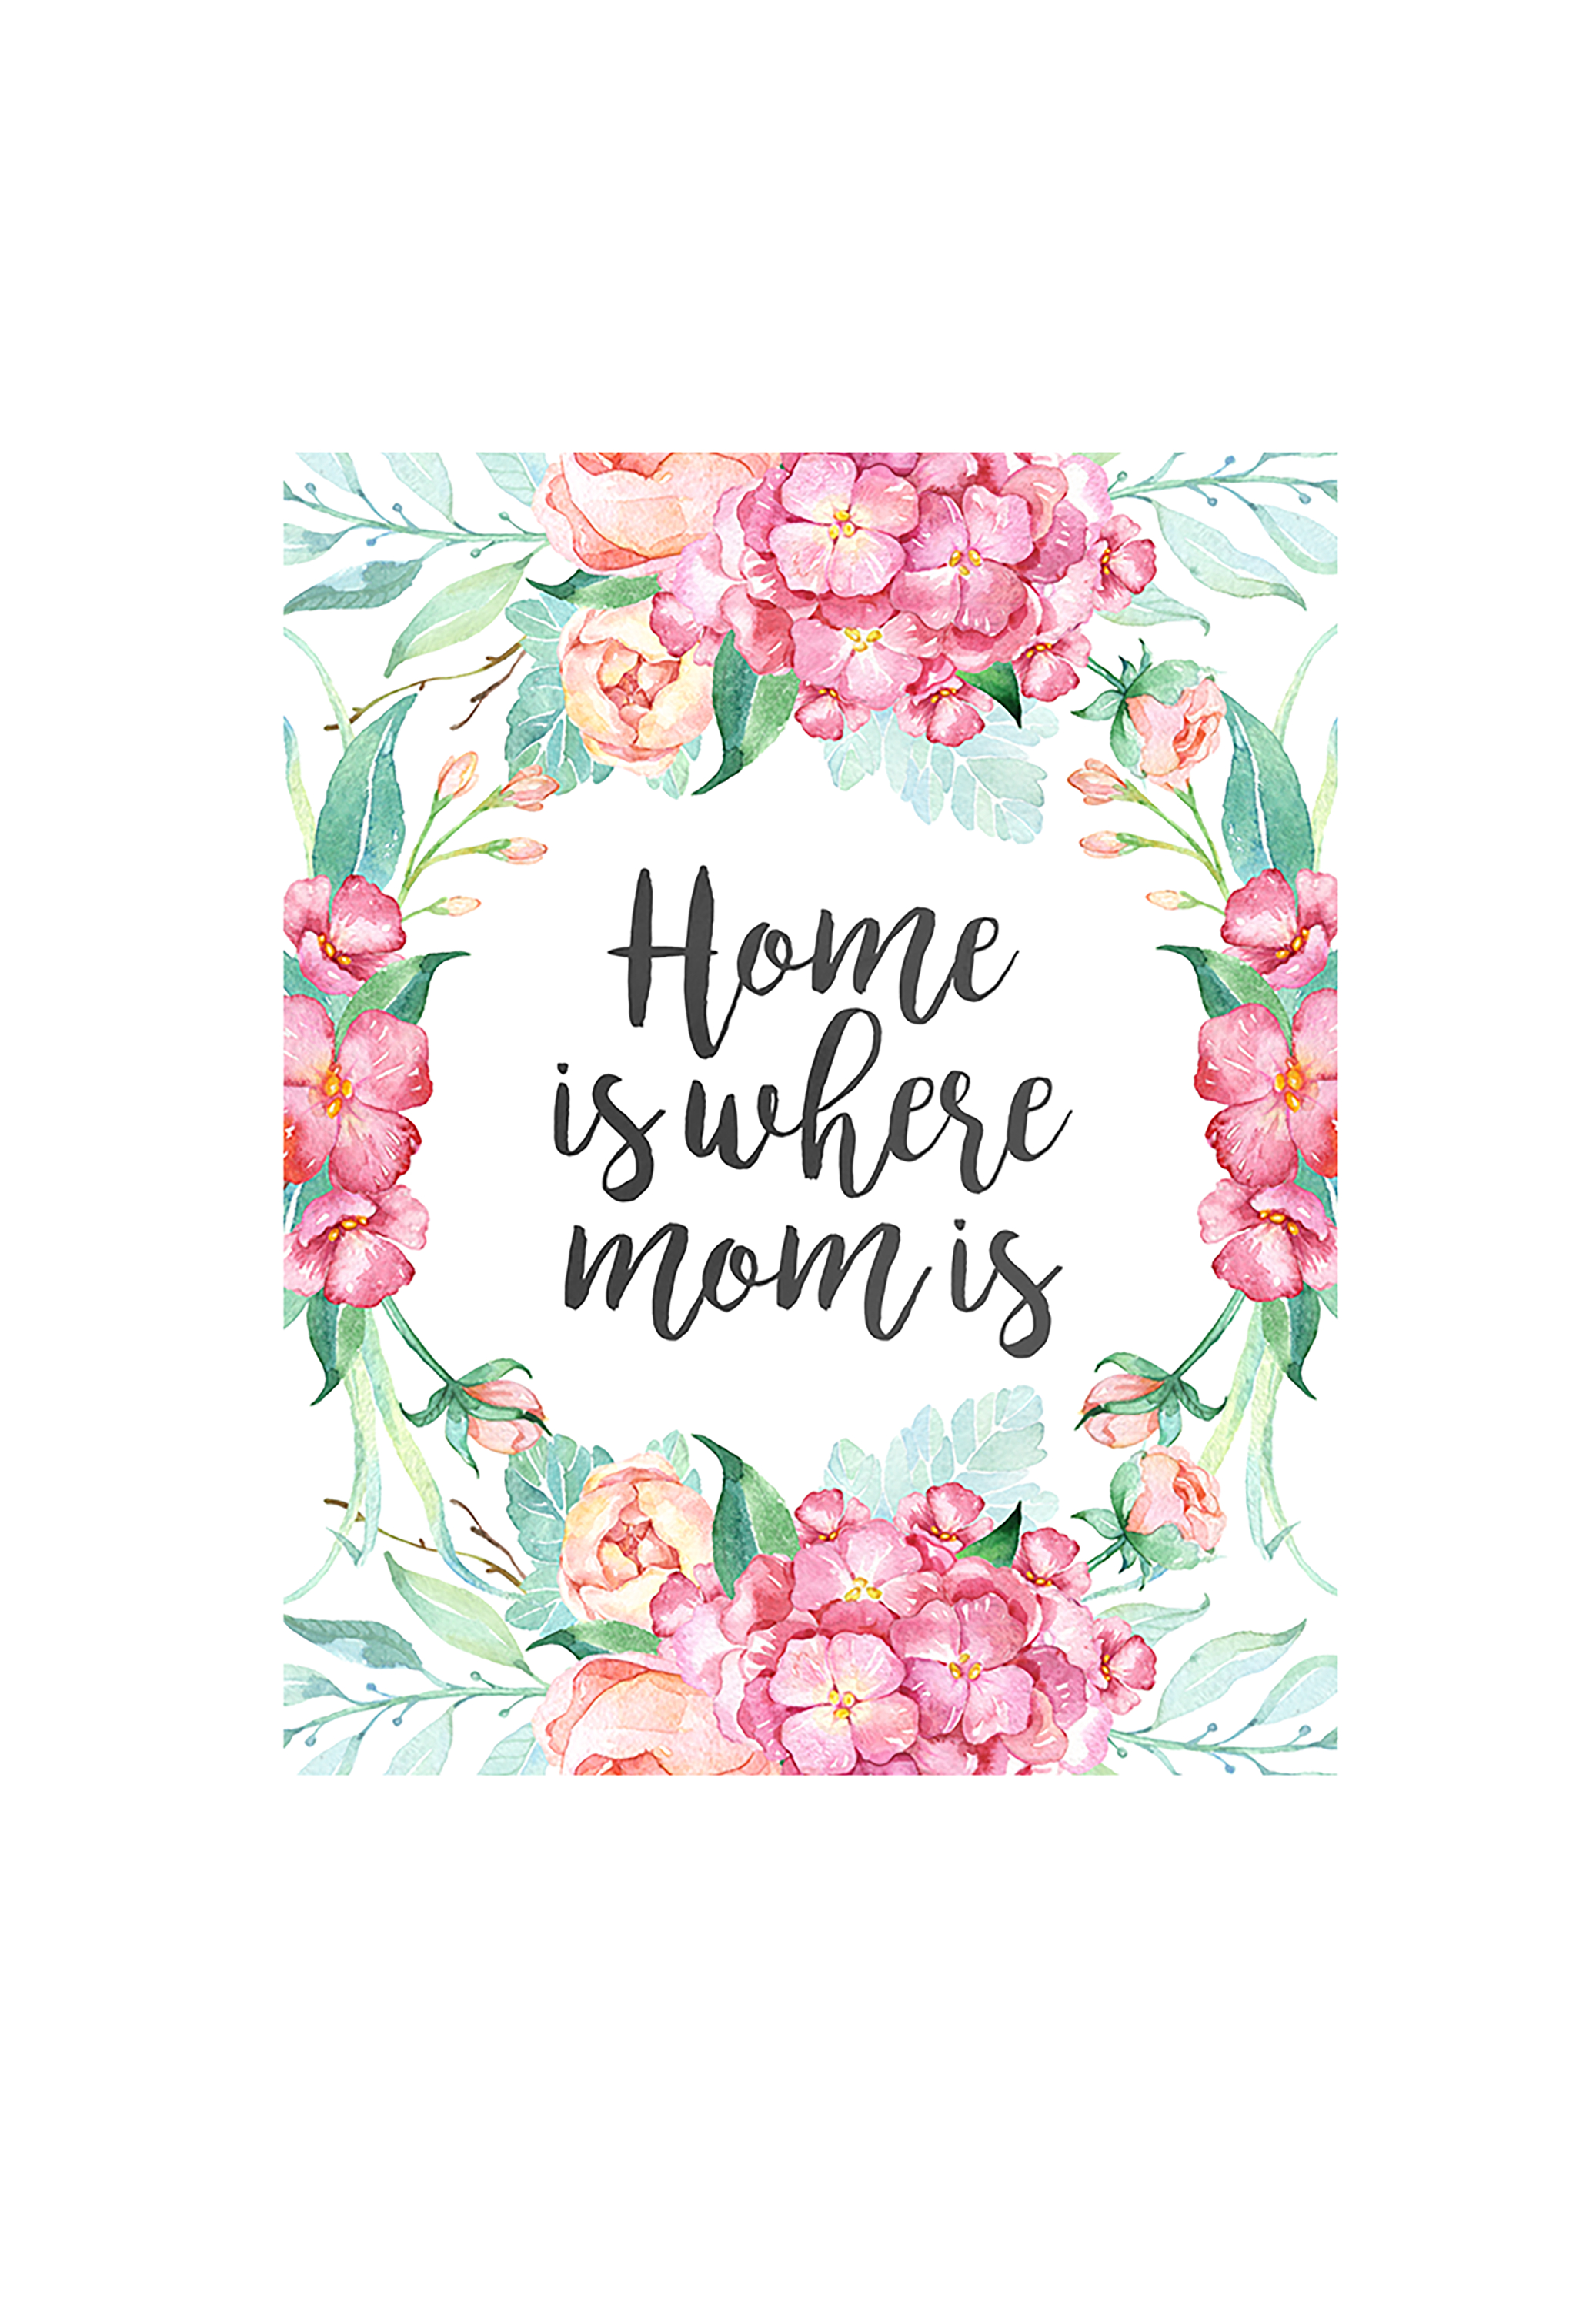 18 Mothers Day Cards - Free Printable Mother's Day Cards - Make Mother Day Card Online Free Printable